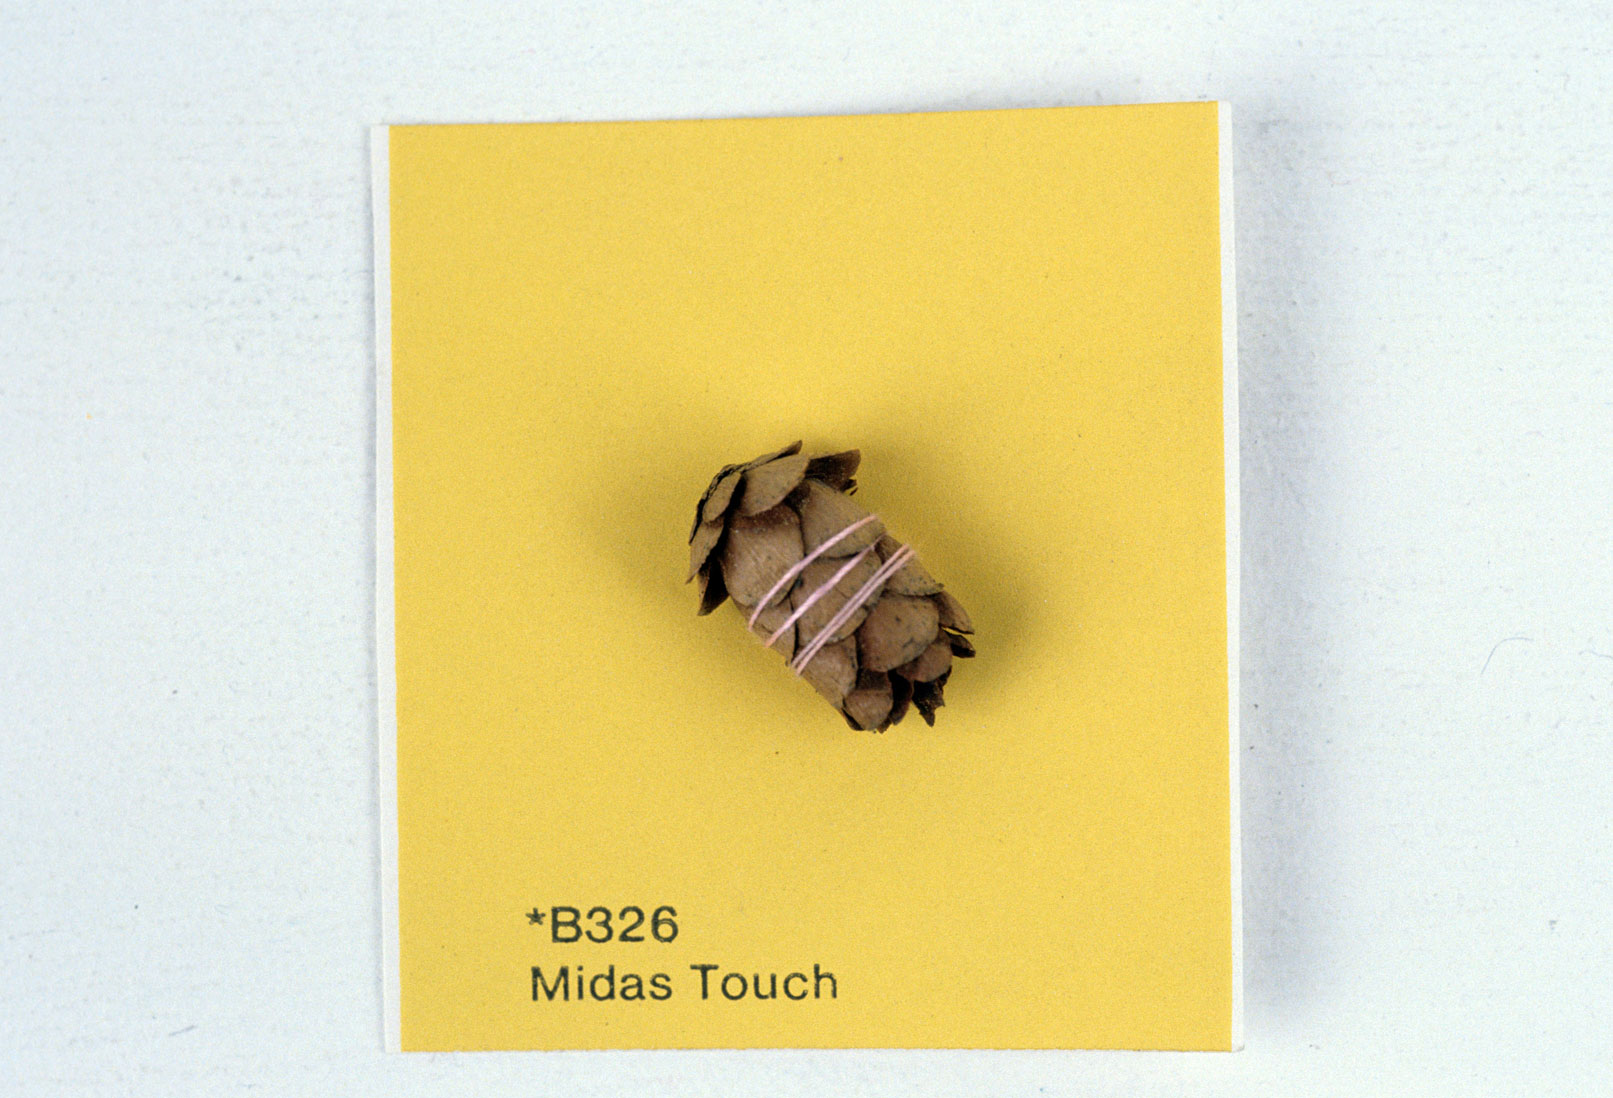 KS93_Midas-Touch_pine-cone-sewn-on-paint-chip_2x2_web.jpg